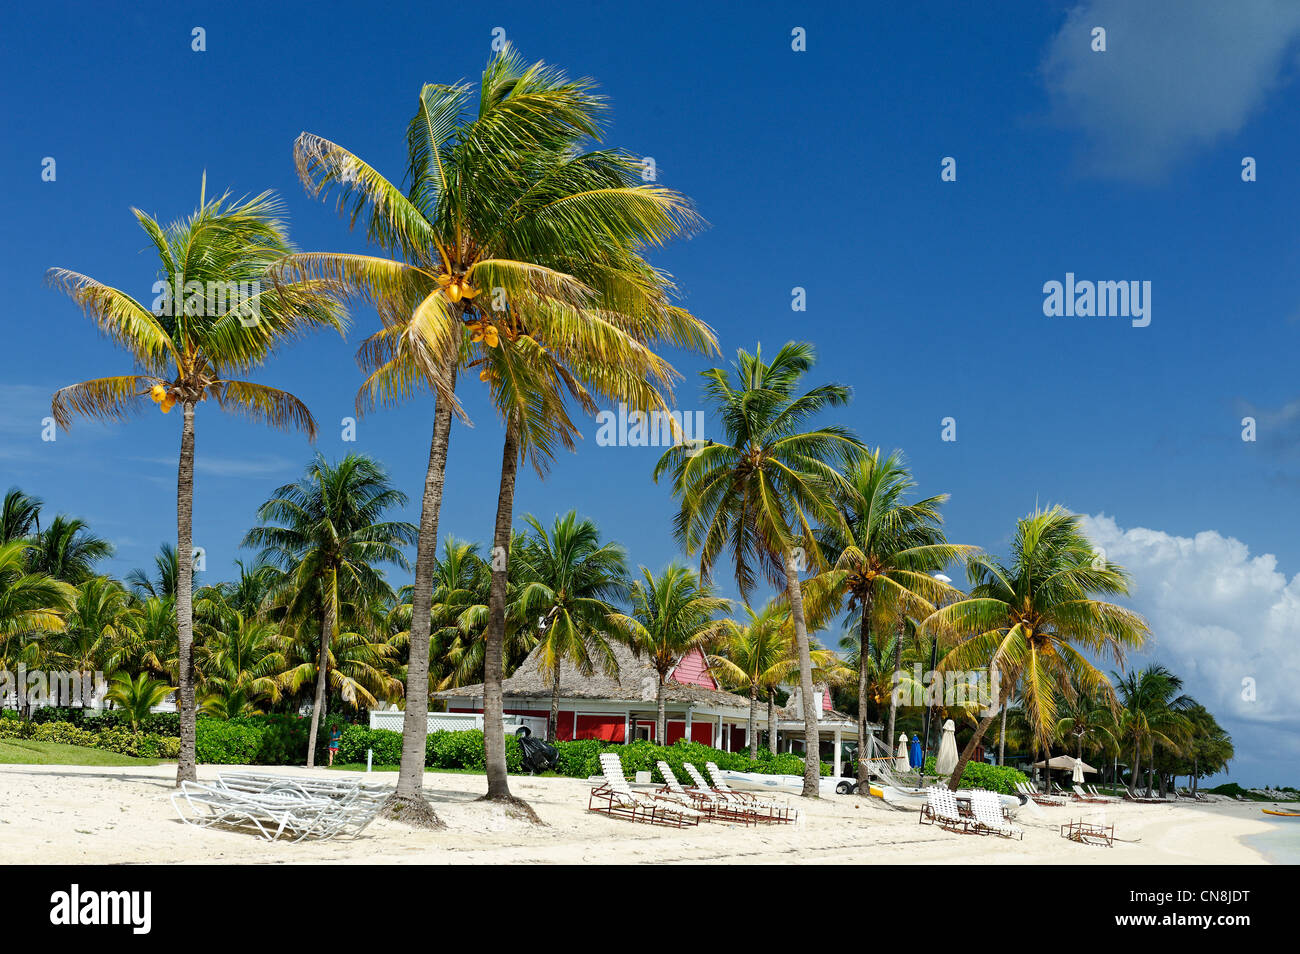 Bahamas, Grand Bahama Island, West End, Old Bahama Bay, white sand beach lined with coconut trees that are home - Stock Image